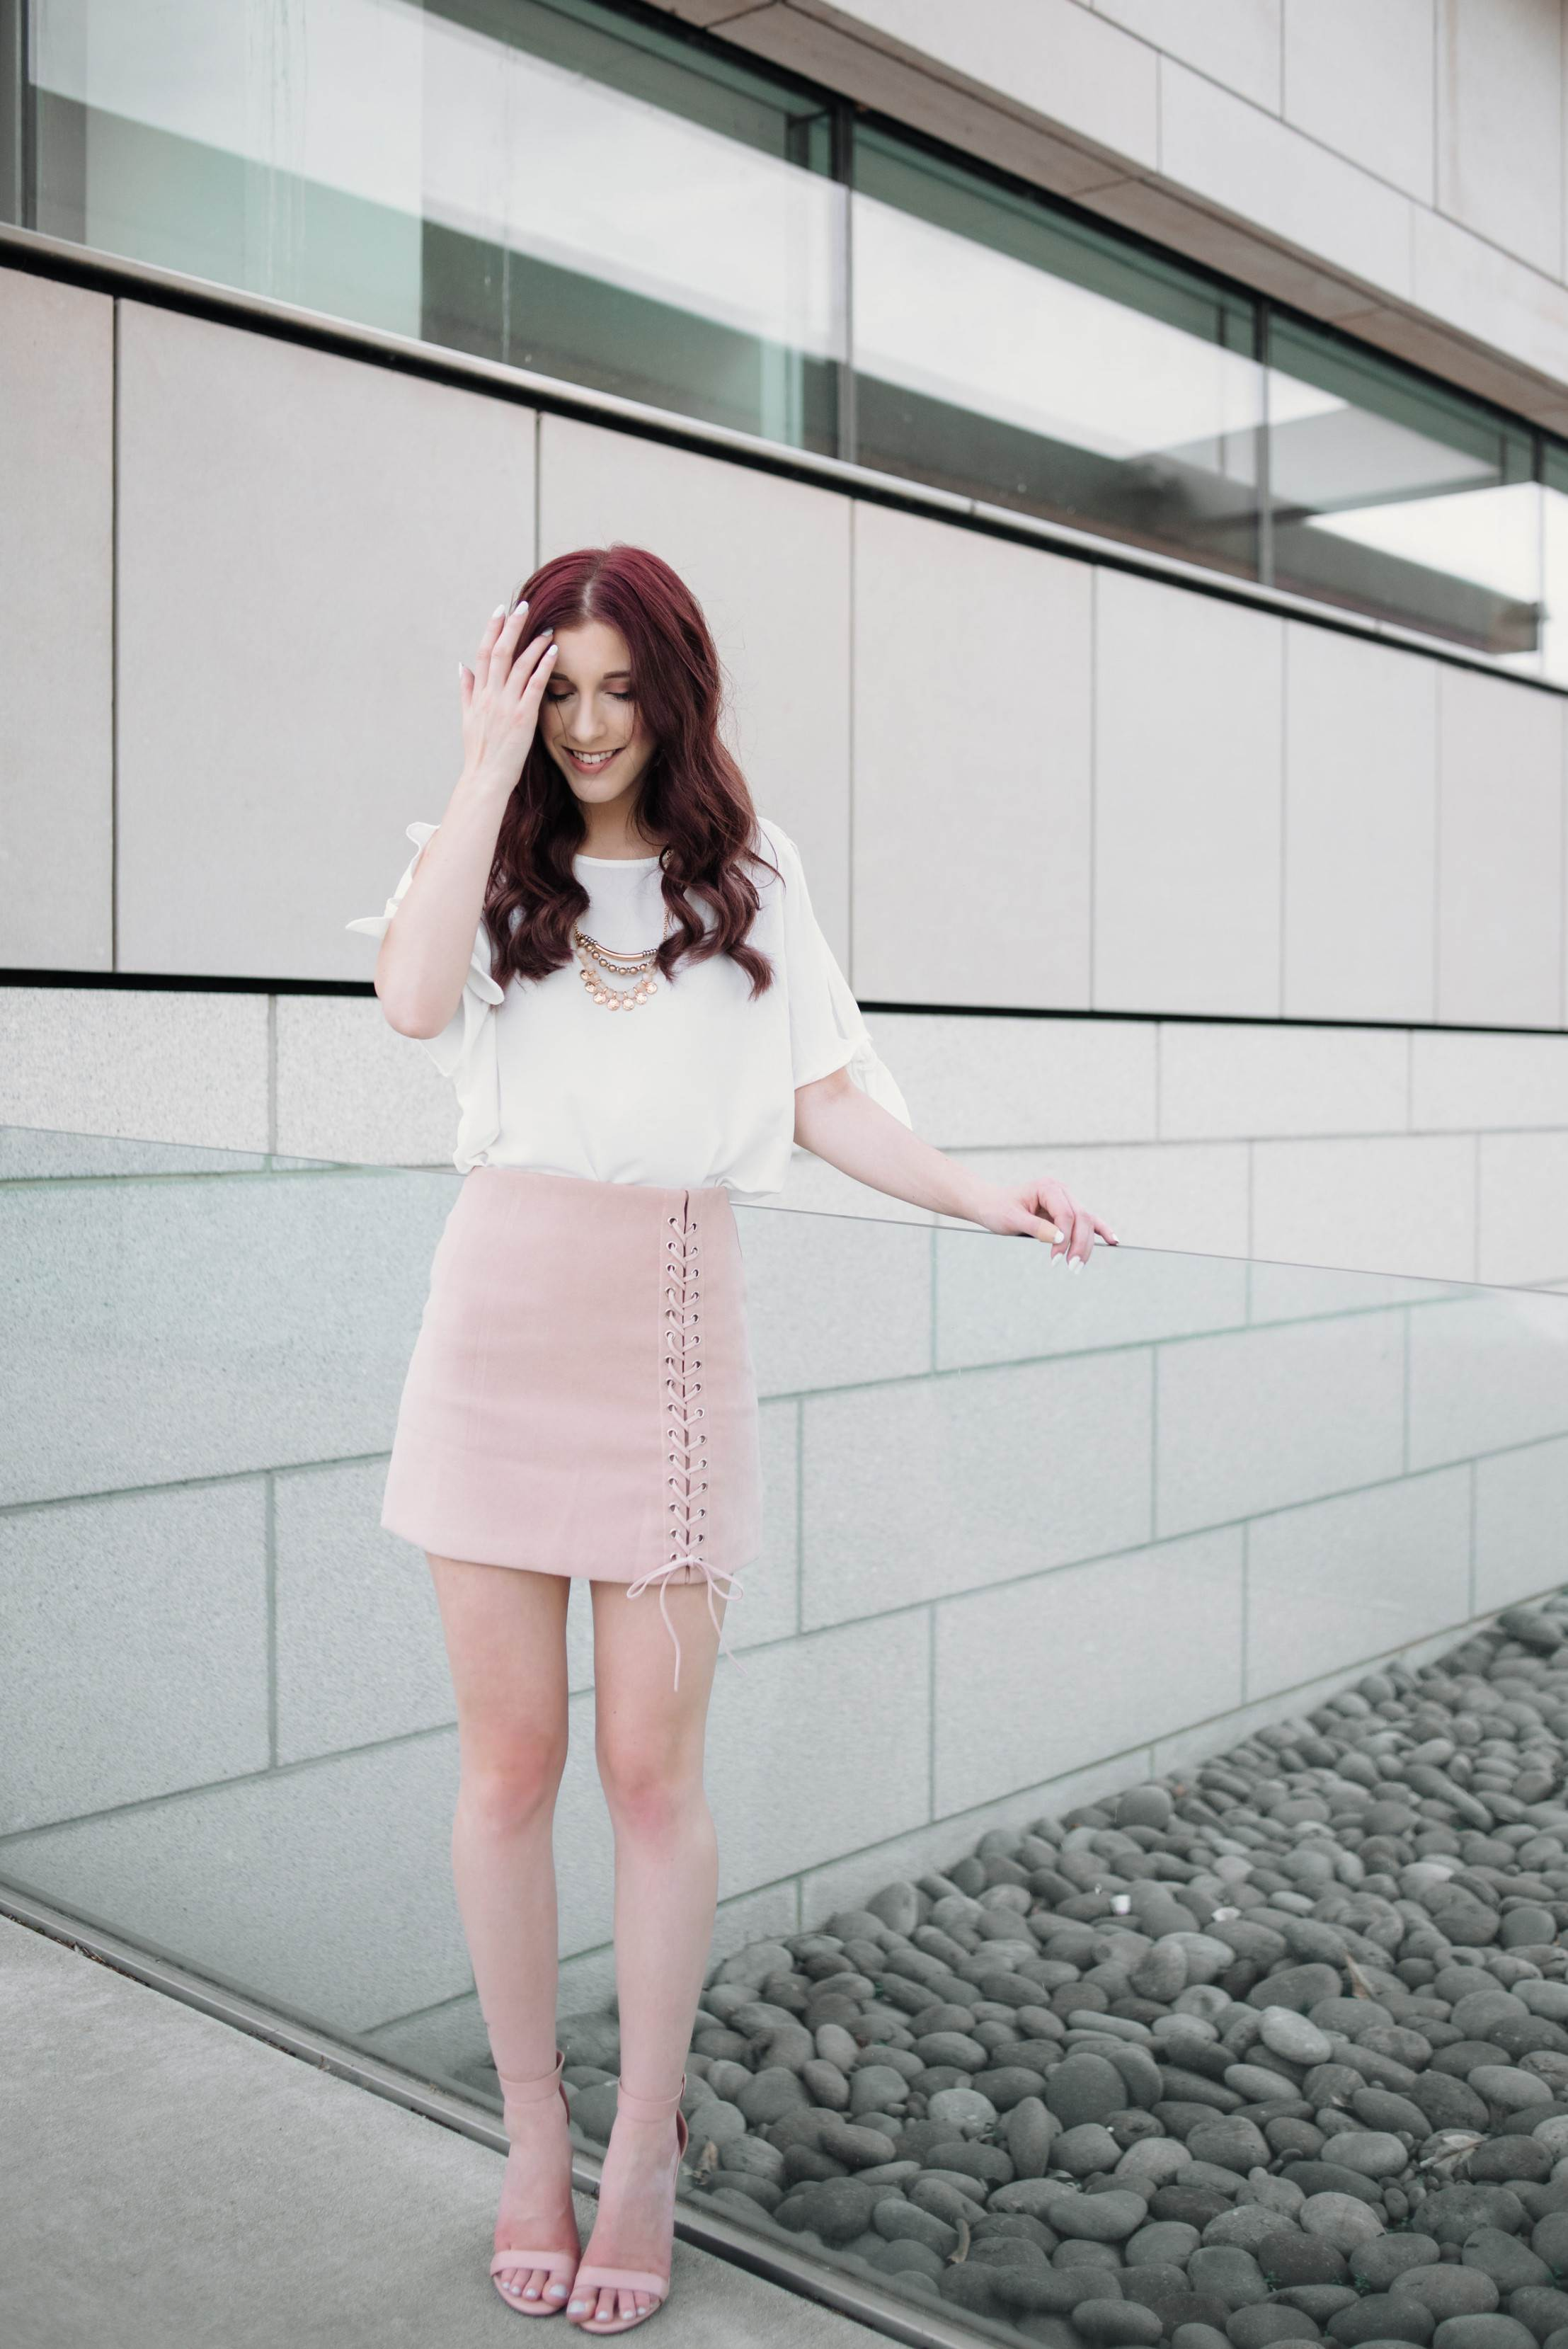 Making Me Blush: All About Spring's Favorite Color